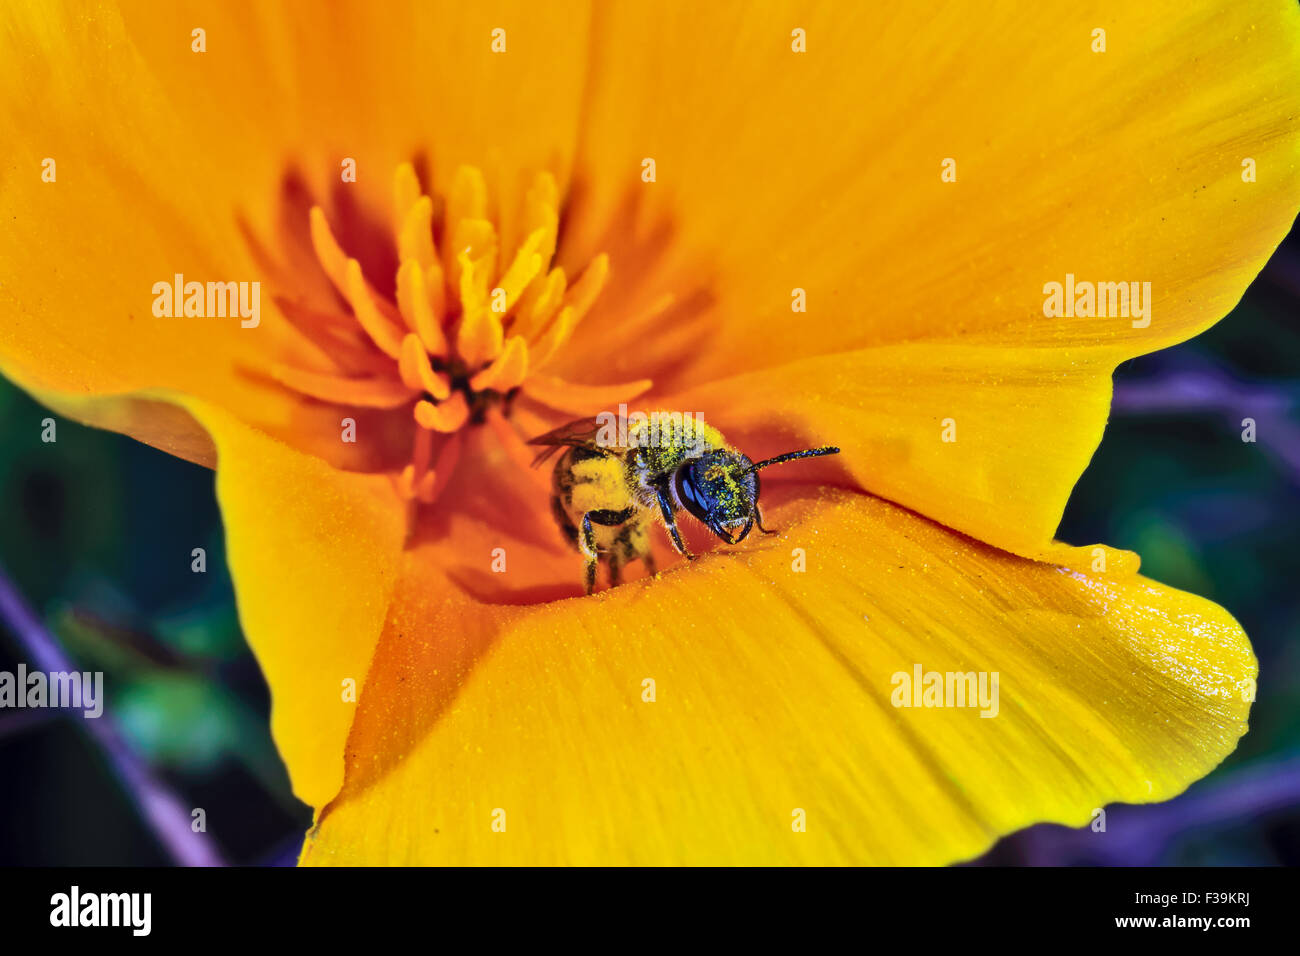 Bee pollinating a Mexican poppy, Arizona, USA - Stock Image